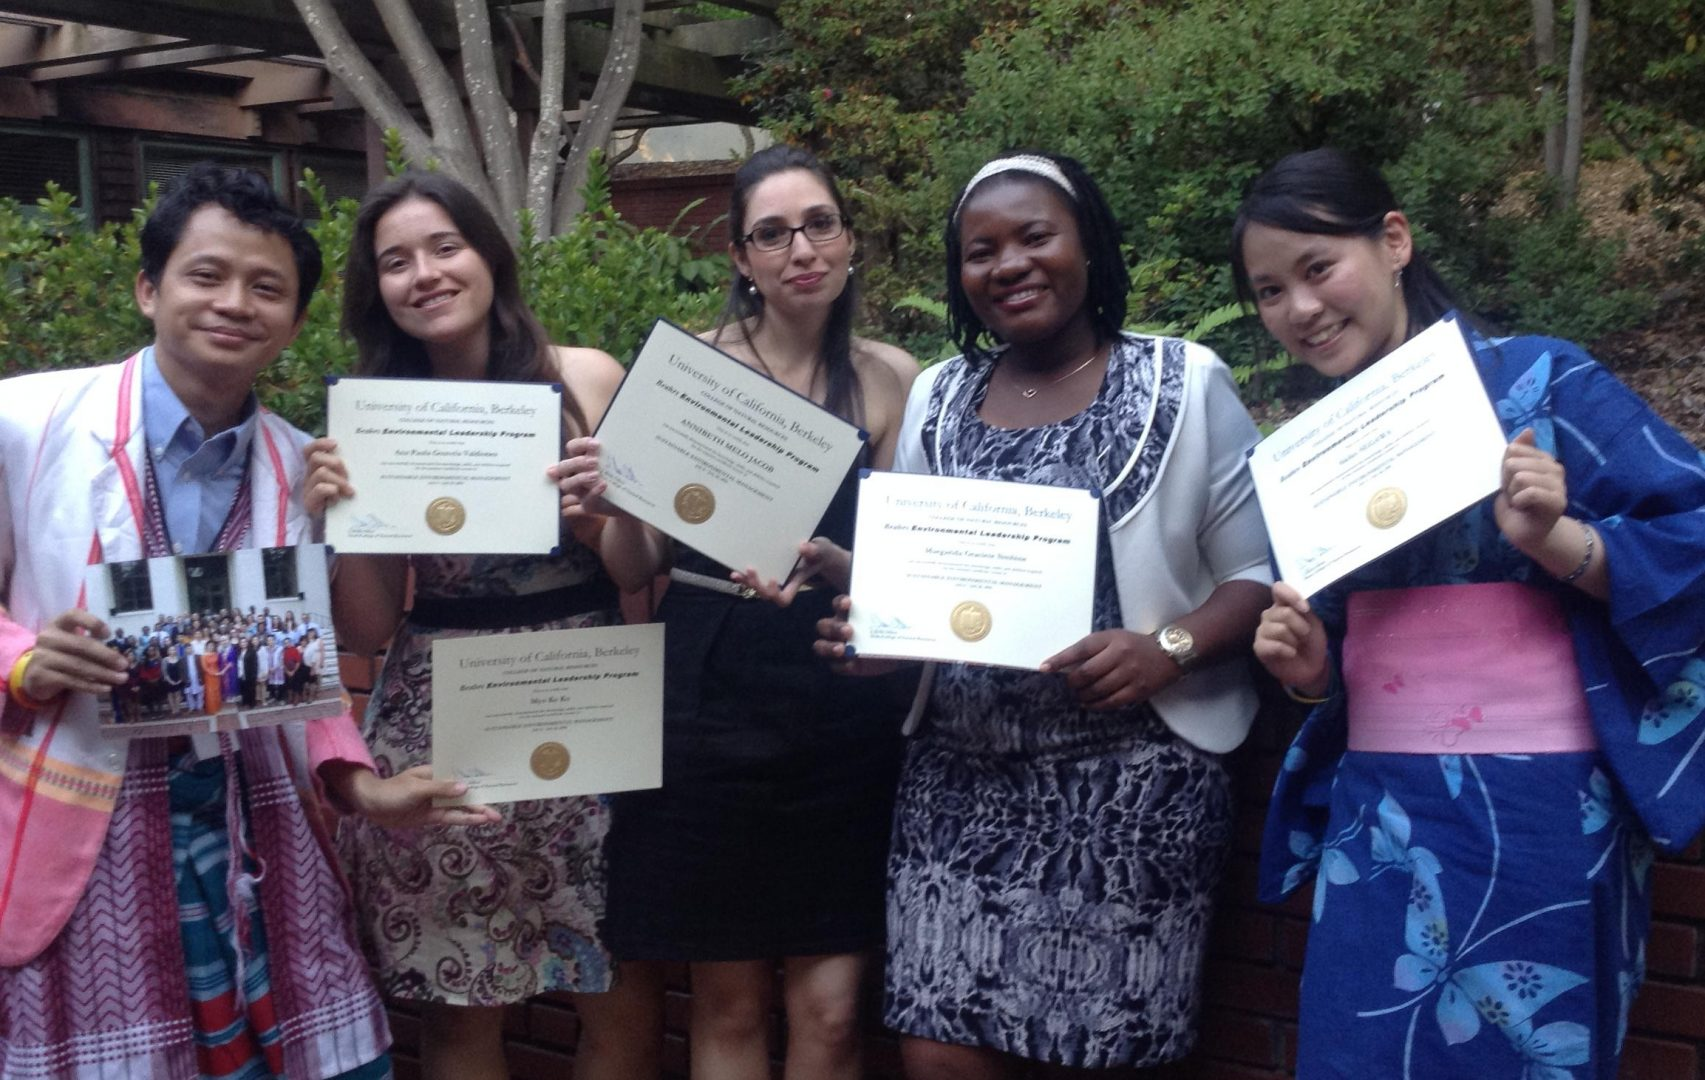 Accepting Scholarship Applications for 2019 - Friends of UTokyo, Inc